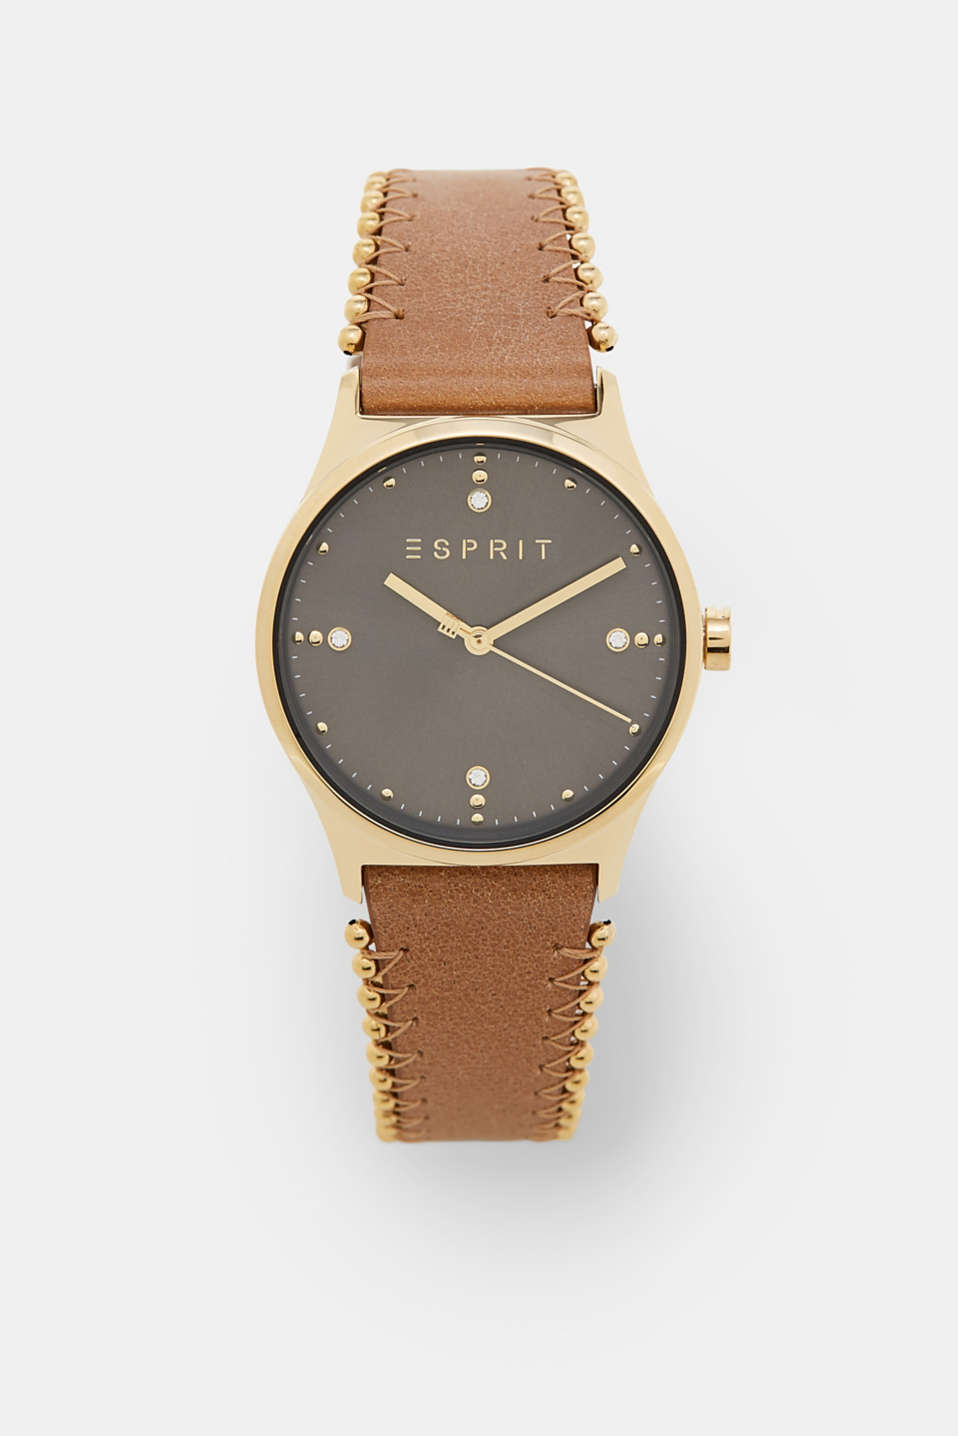 Esprit - Watch, leather wrist strap and metal beads